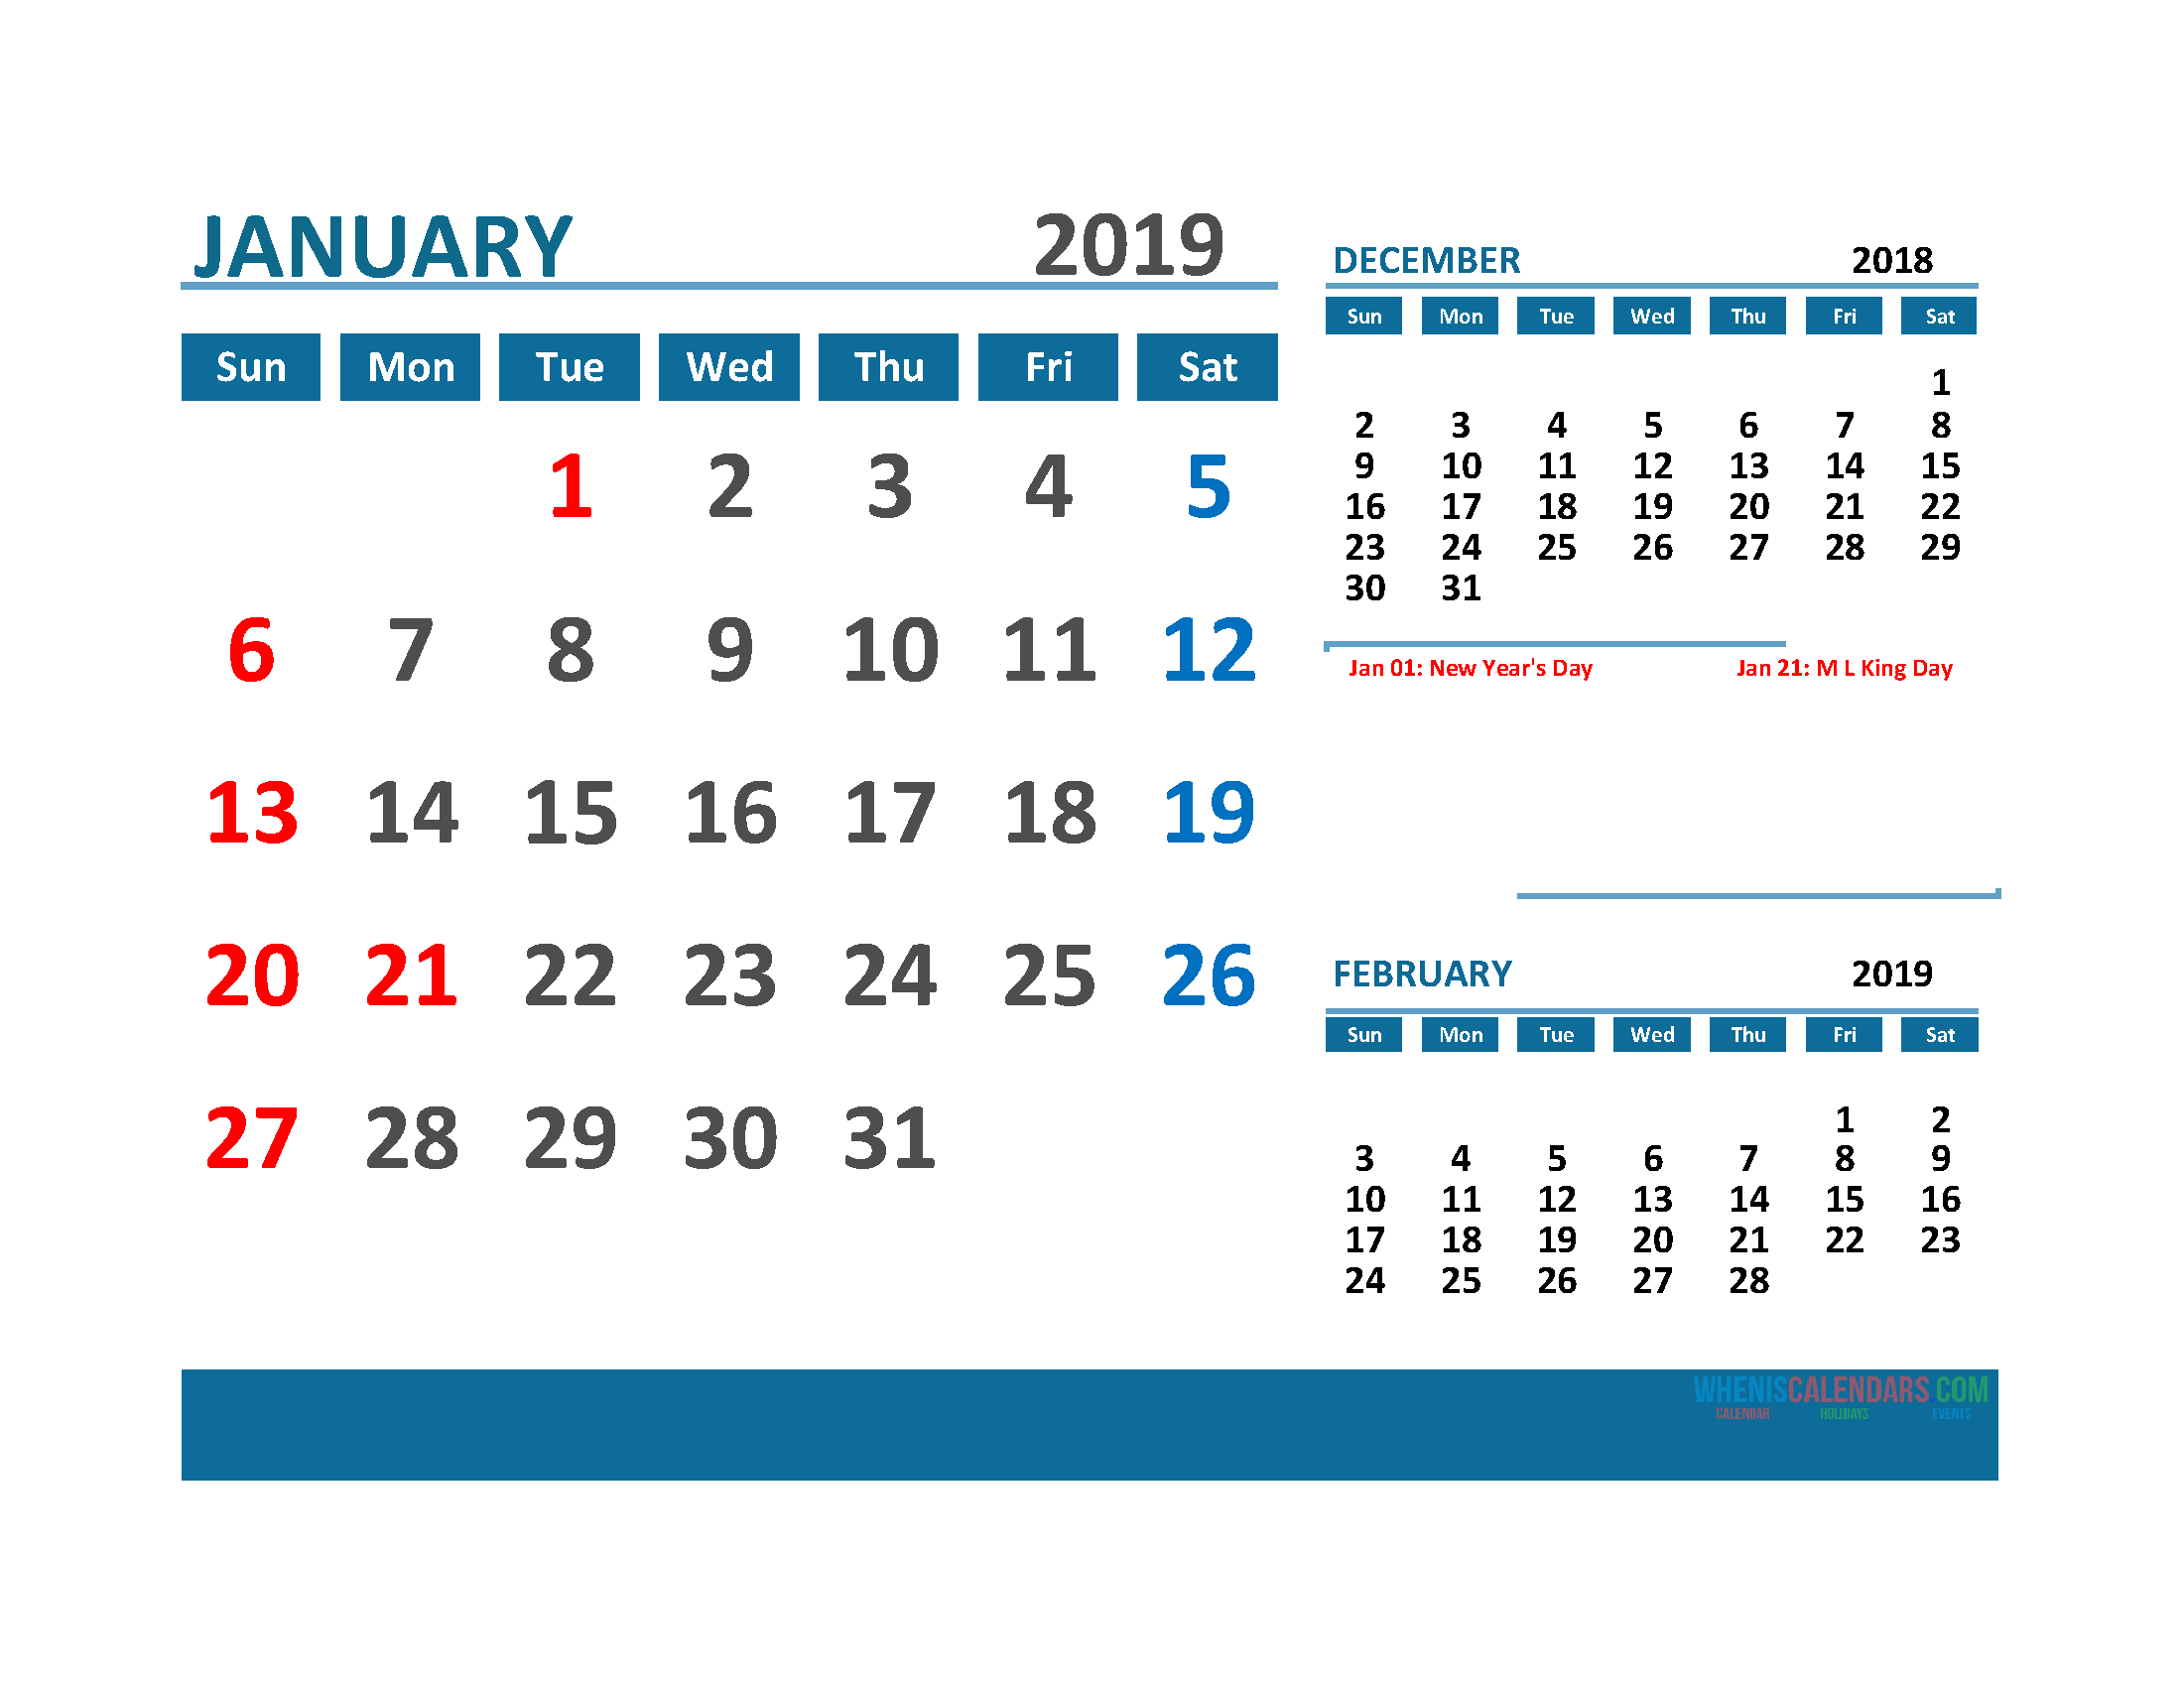 Printable 3 Month Calendar 2019 with Holidays [December 2018, January 2019 and February 2019 Calendar]